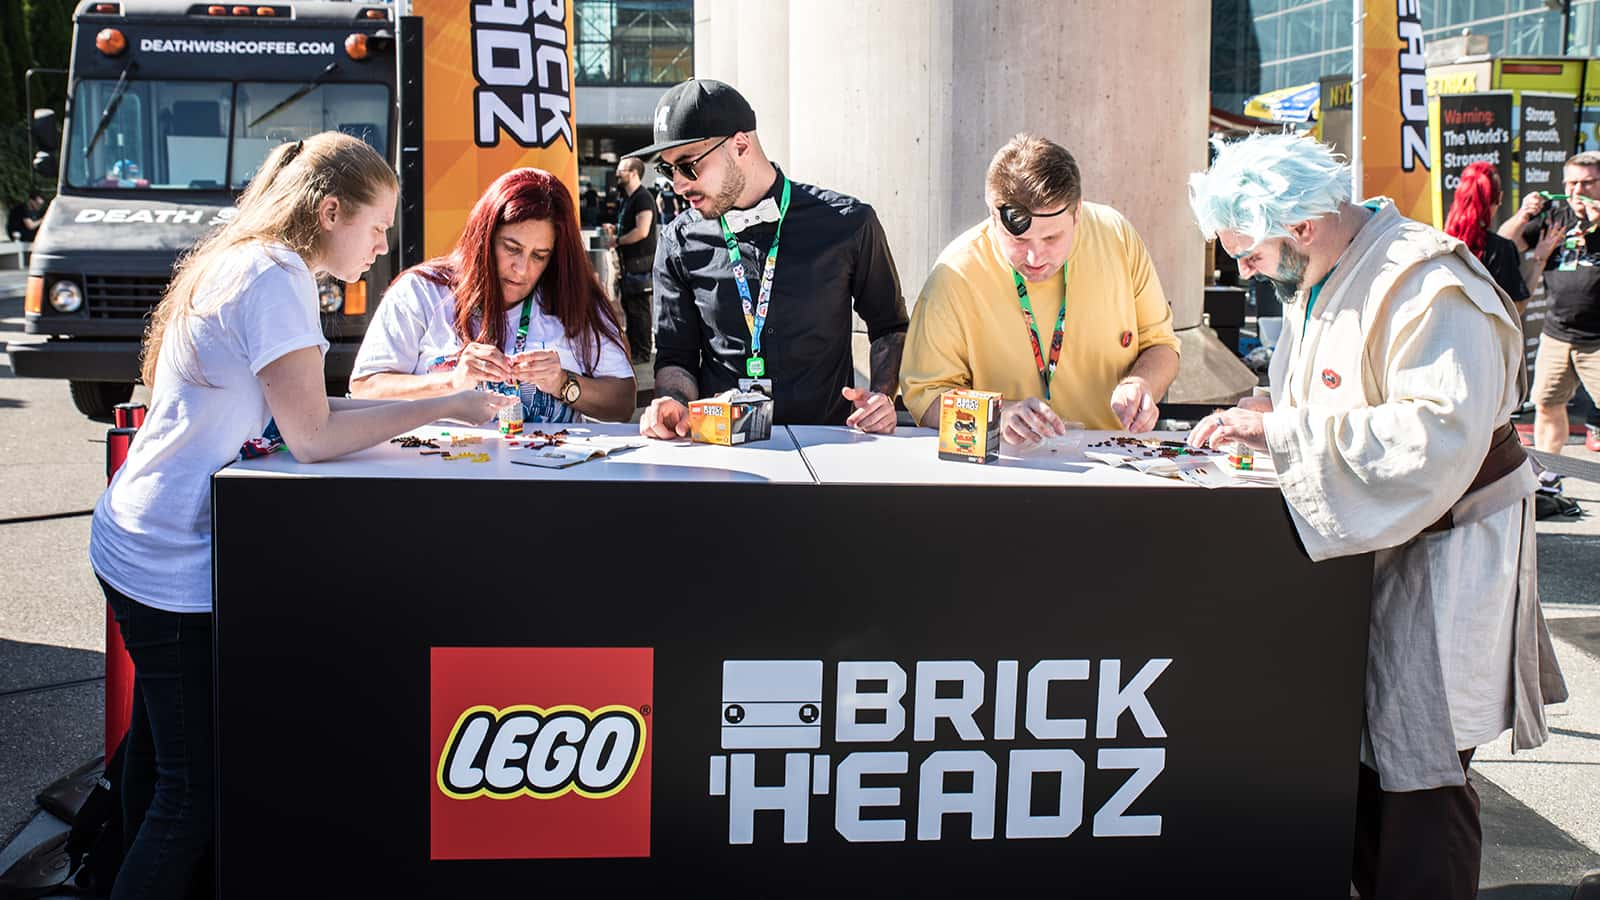 Marco Bessa, Senior Designer Super Heros/BrickHeadz design, conducts build challenges on site at the LEGO Star Wars BrickHeadz zone at New York Comic Con 2017.